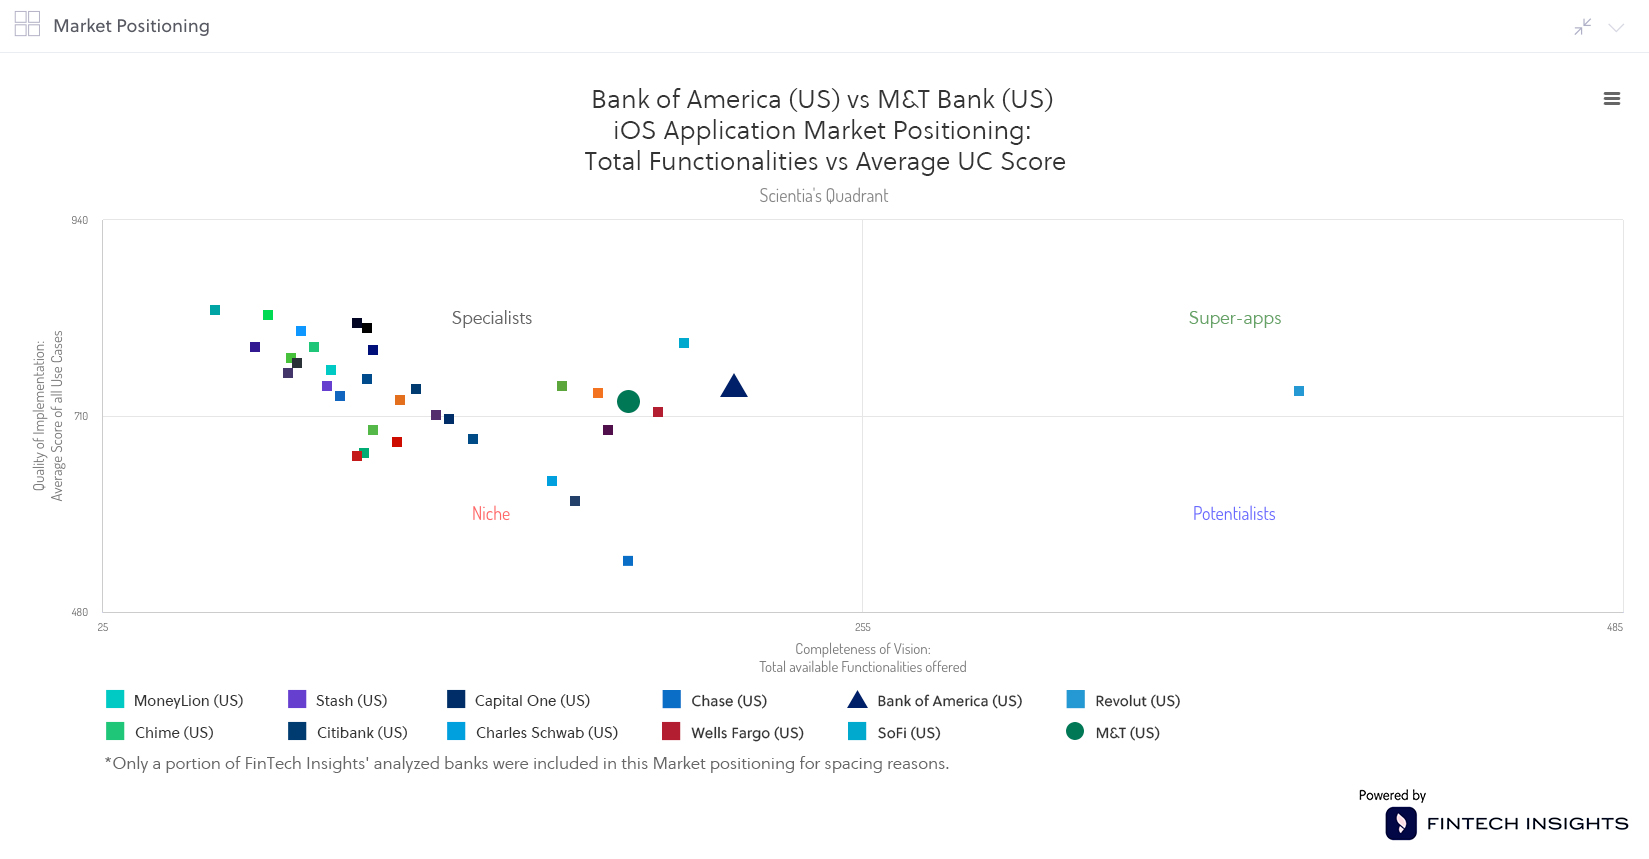 Positioning in the iOS app of M&T Bank and BofA in the US